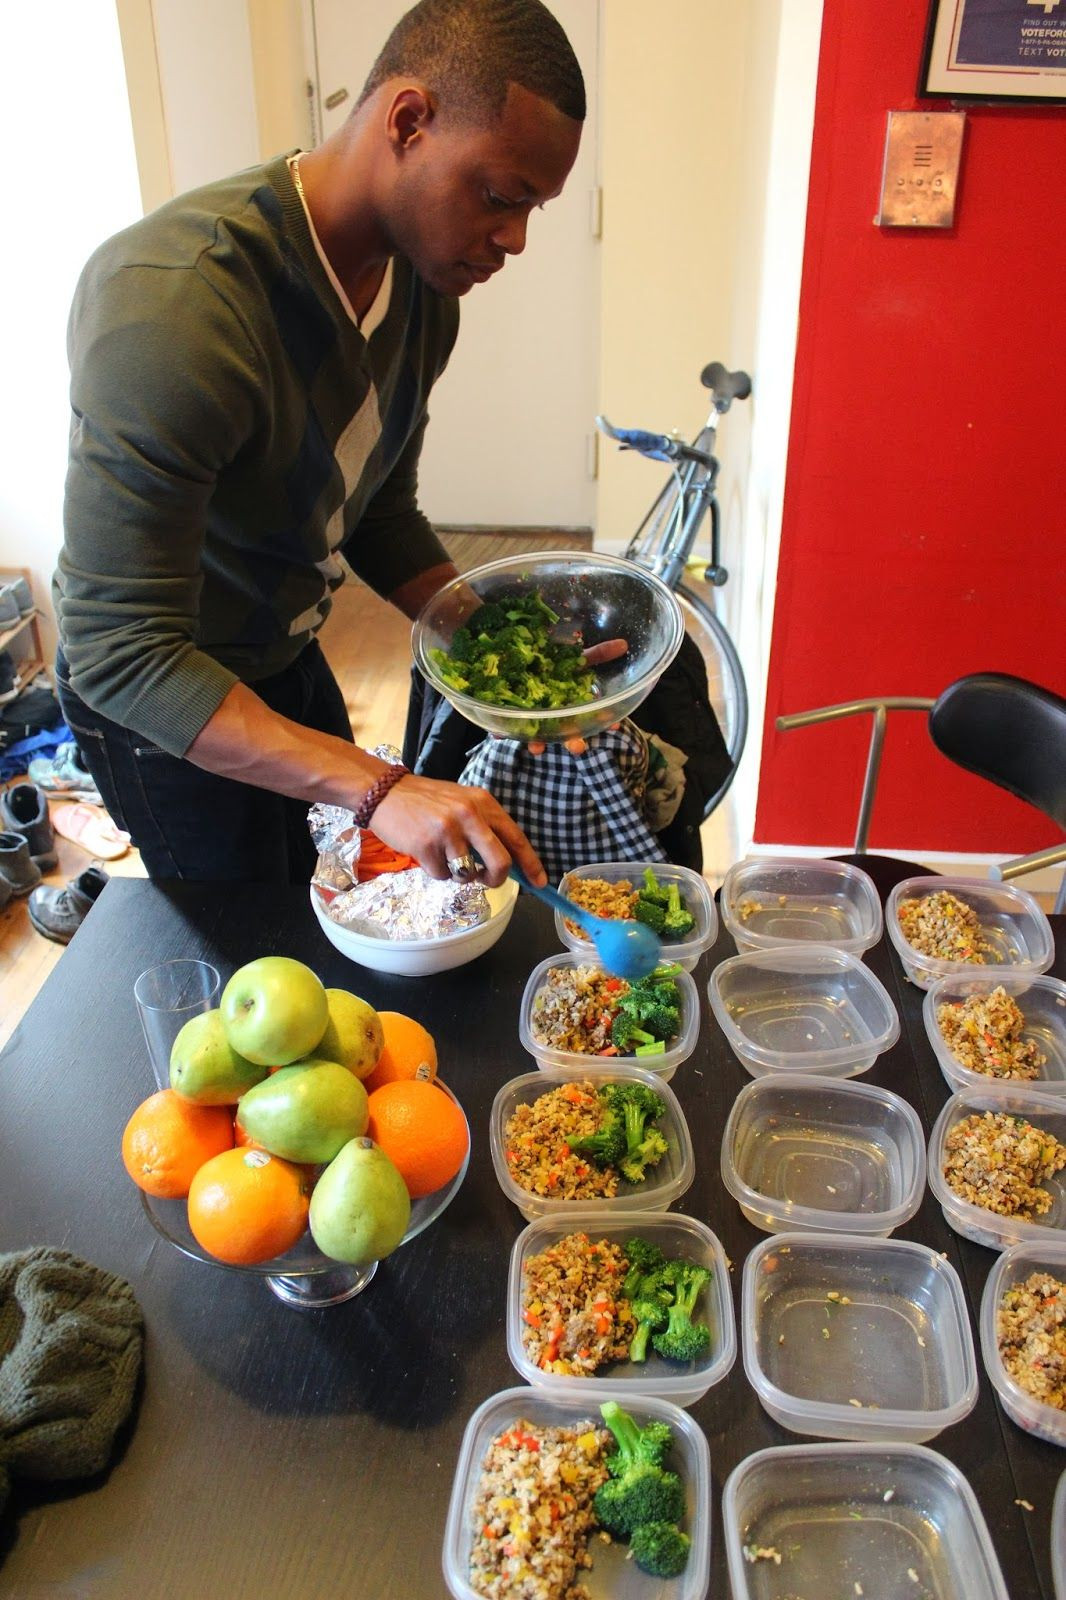 Healthy Lunches For The Week  Weekly Meal Prep on Pinterest